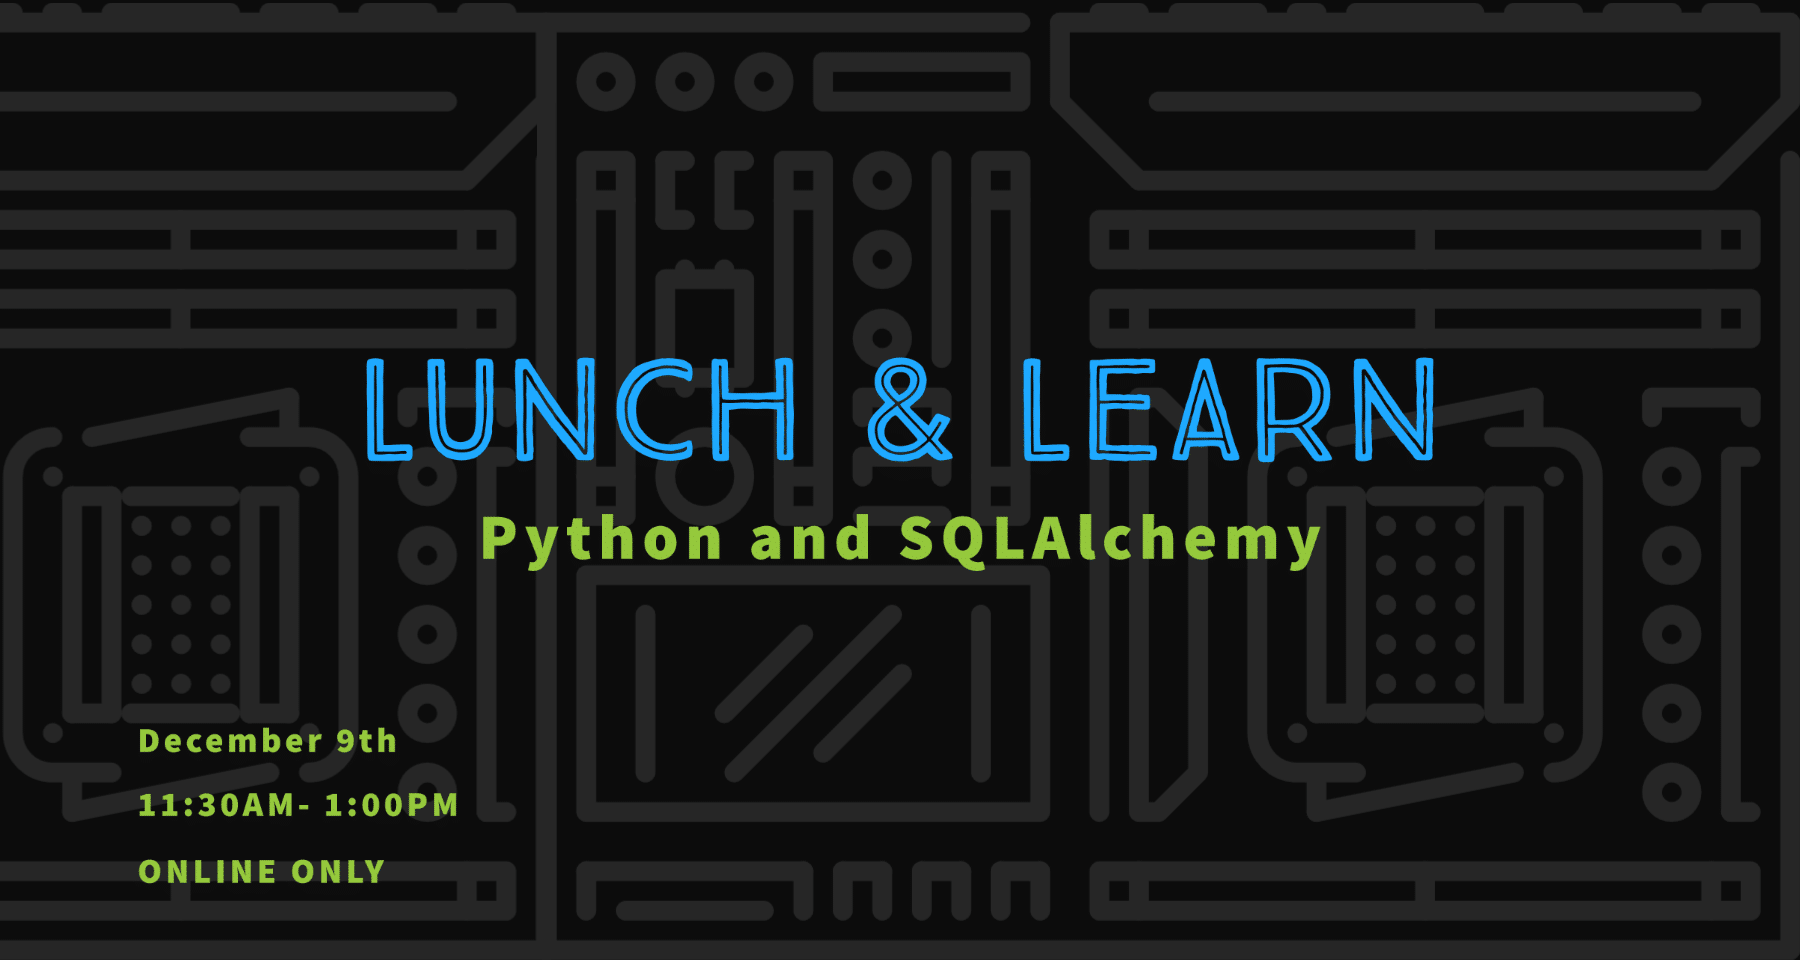 Lunch and learn: python and SQLAlchemy. December 9th 11:30am- 1:00pm. Online Only